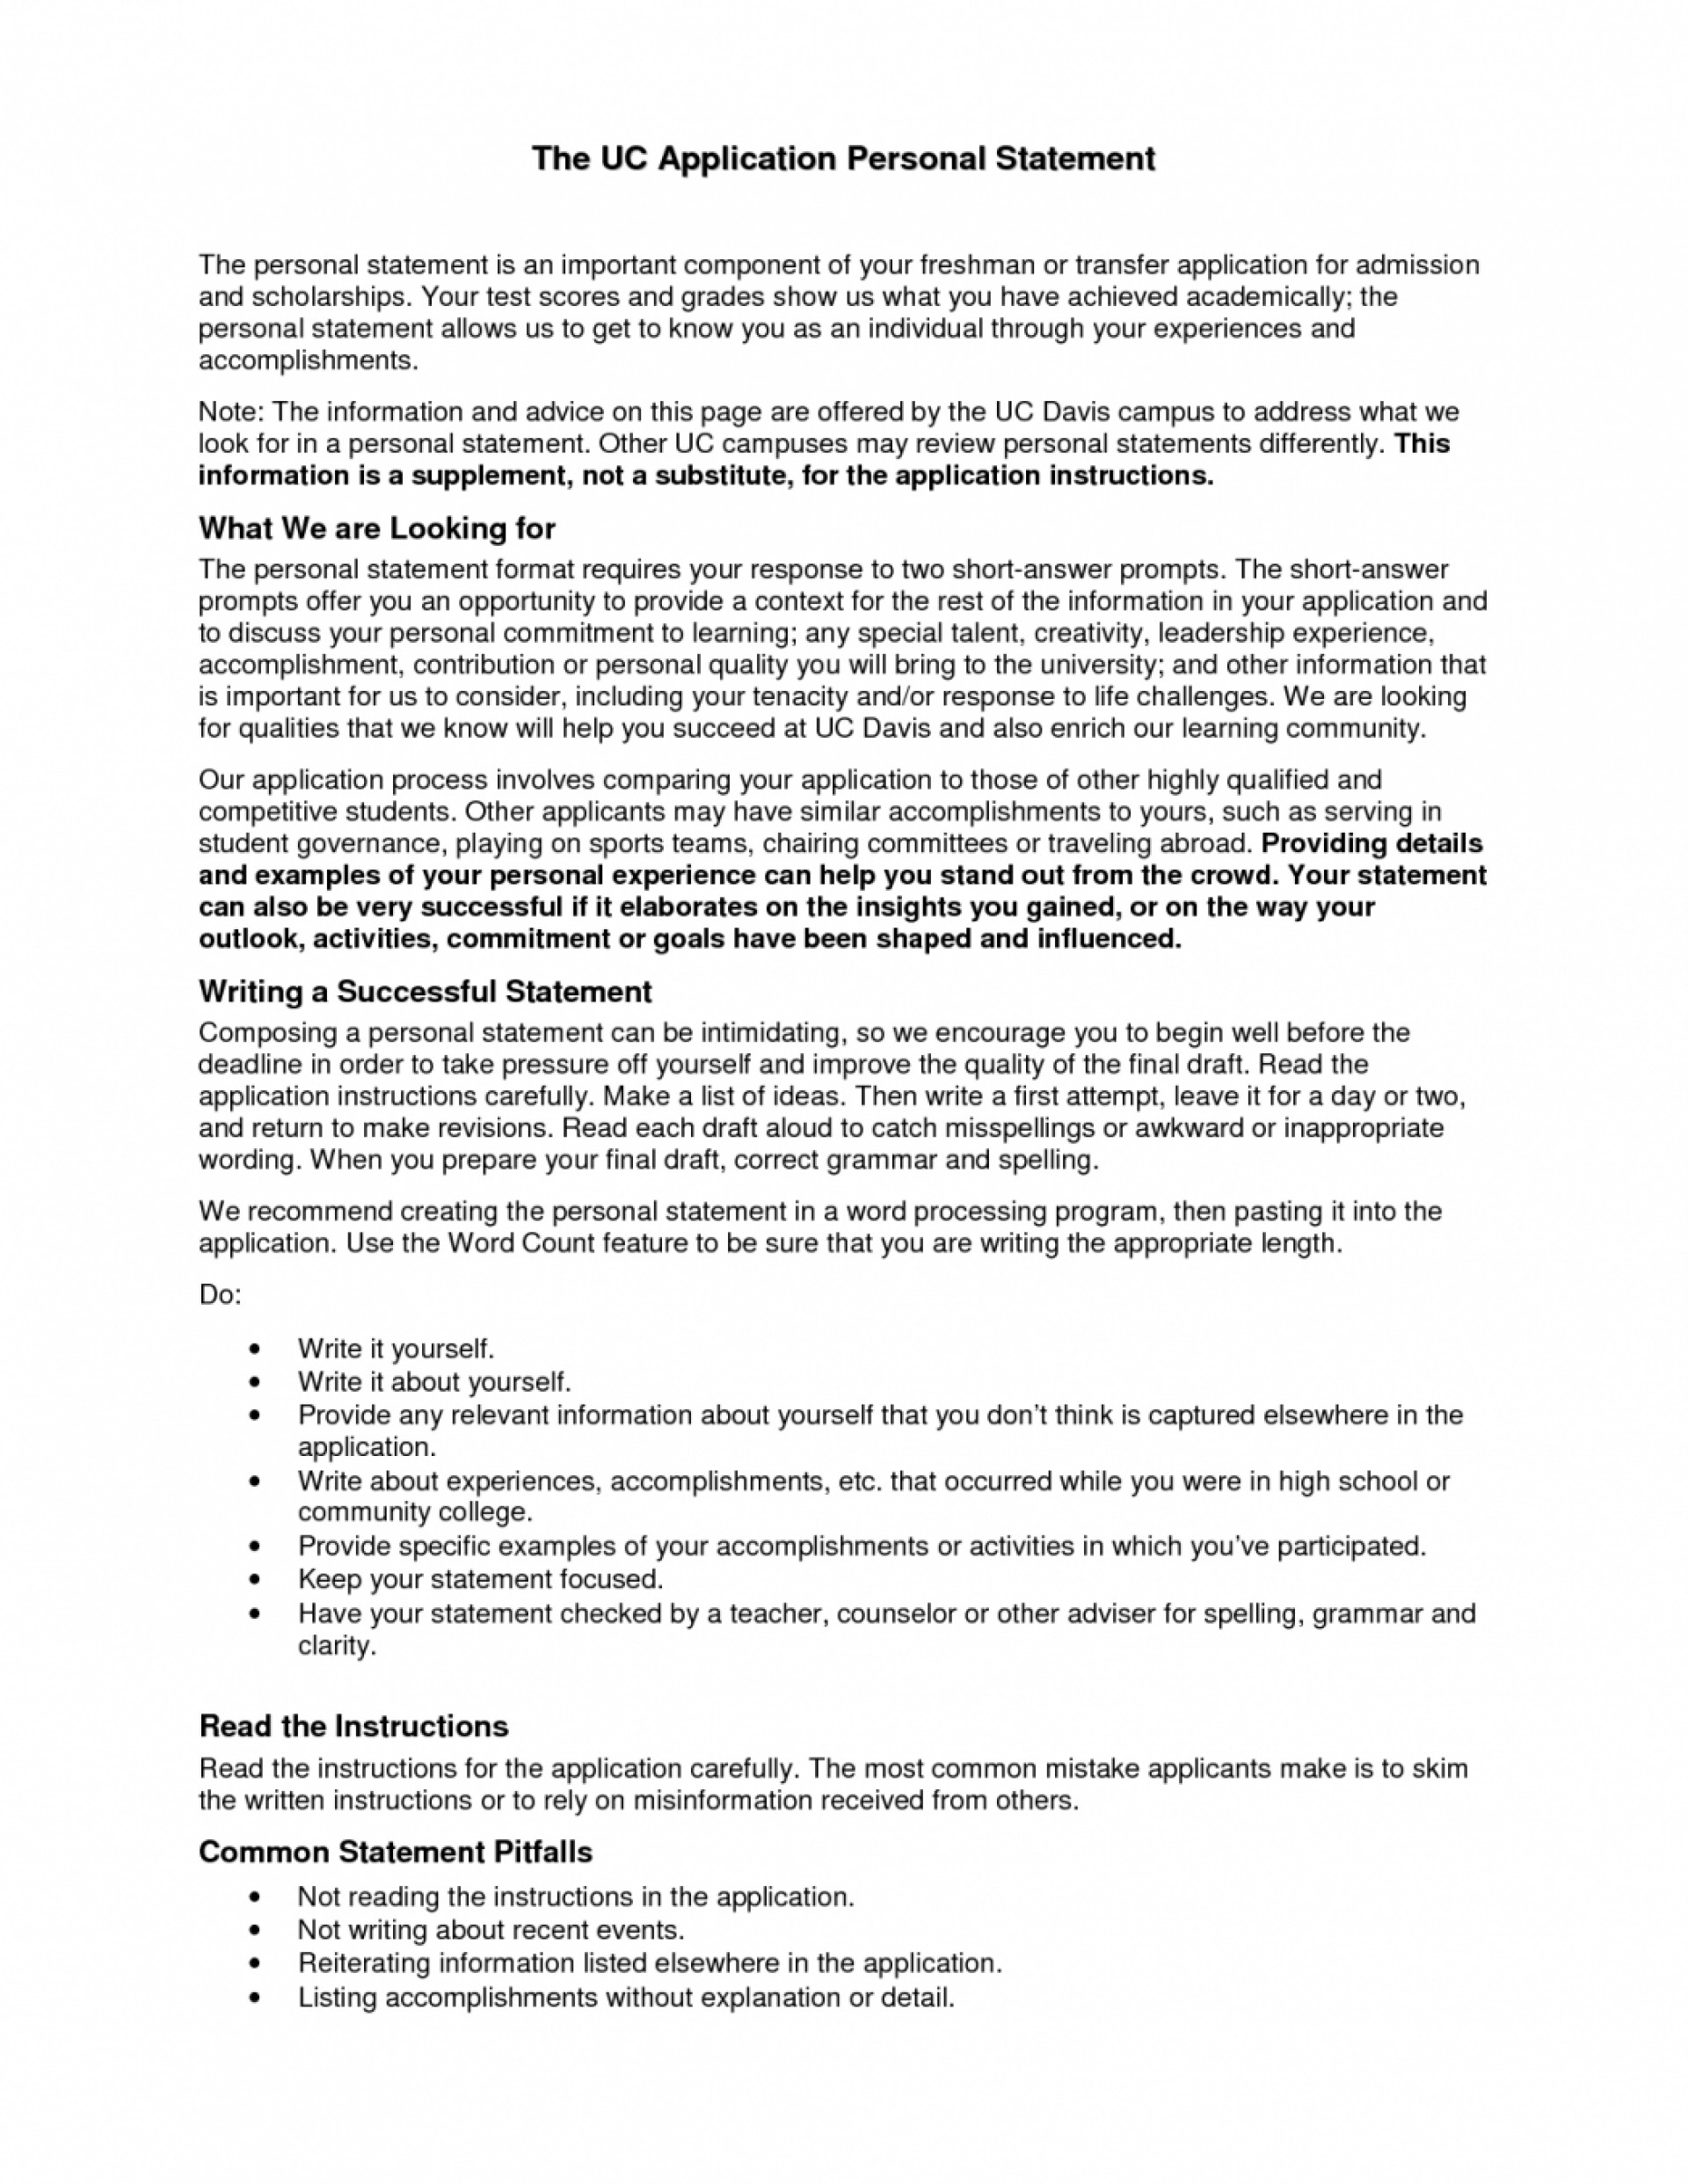 012 Who Am Issayxamples Mba Admission Tips Want To Buy Why Do You Attend This University Samples Ucla Personal Statement Template Kmc Study At Sample 1048x1356 Teacher Impressive Be A Essay Pdf Would Become 1920